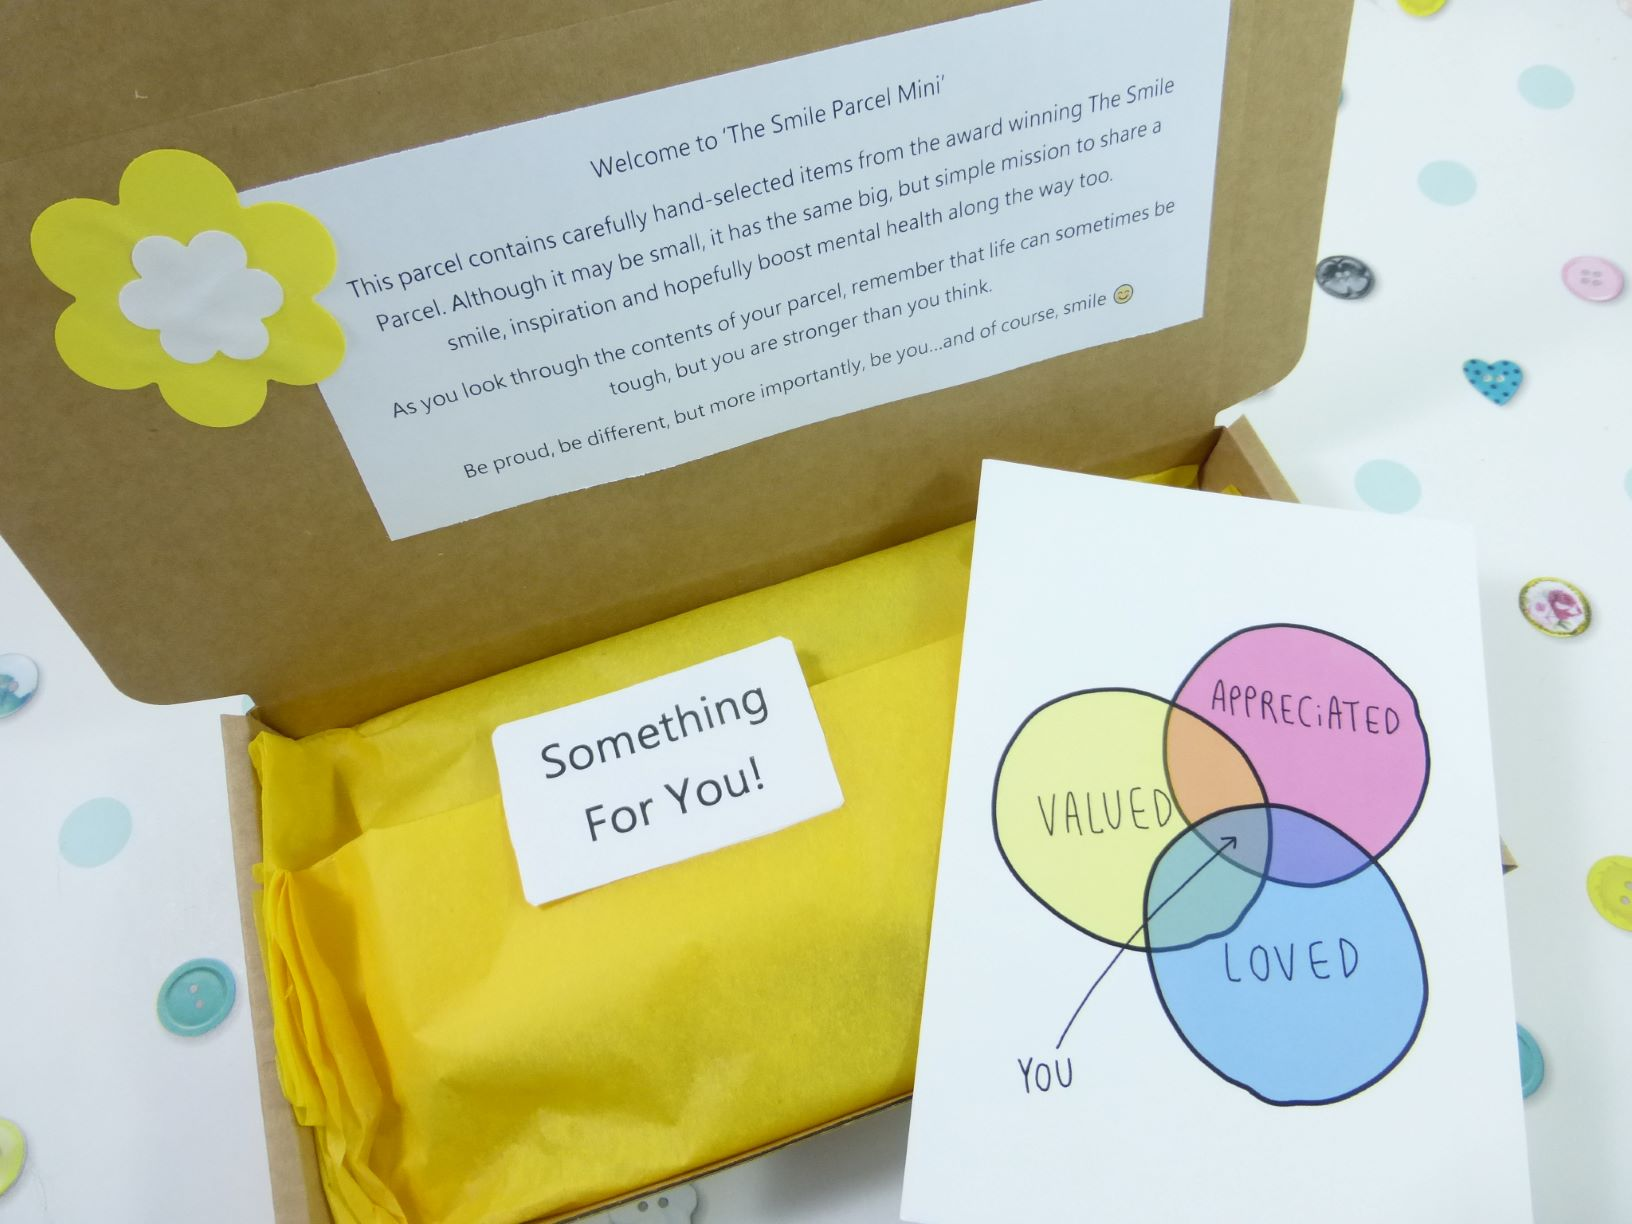 Yellow Letterbox Friendly, Pick Me Up Gift, The Smile Parcel Mini, Self Care Box, Mental Health Gift, Wellbeing Box, Happy Mail Kind Shop 2